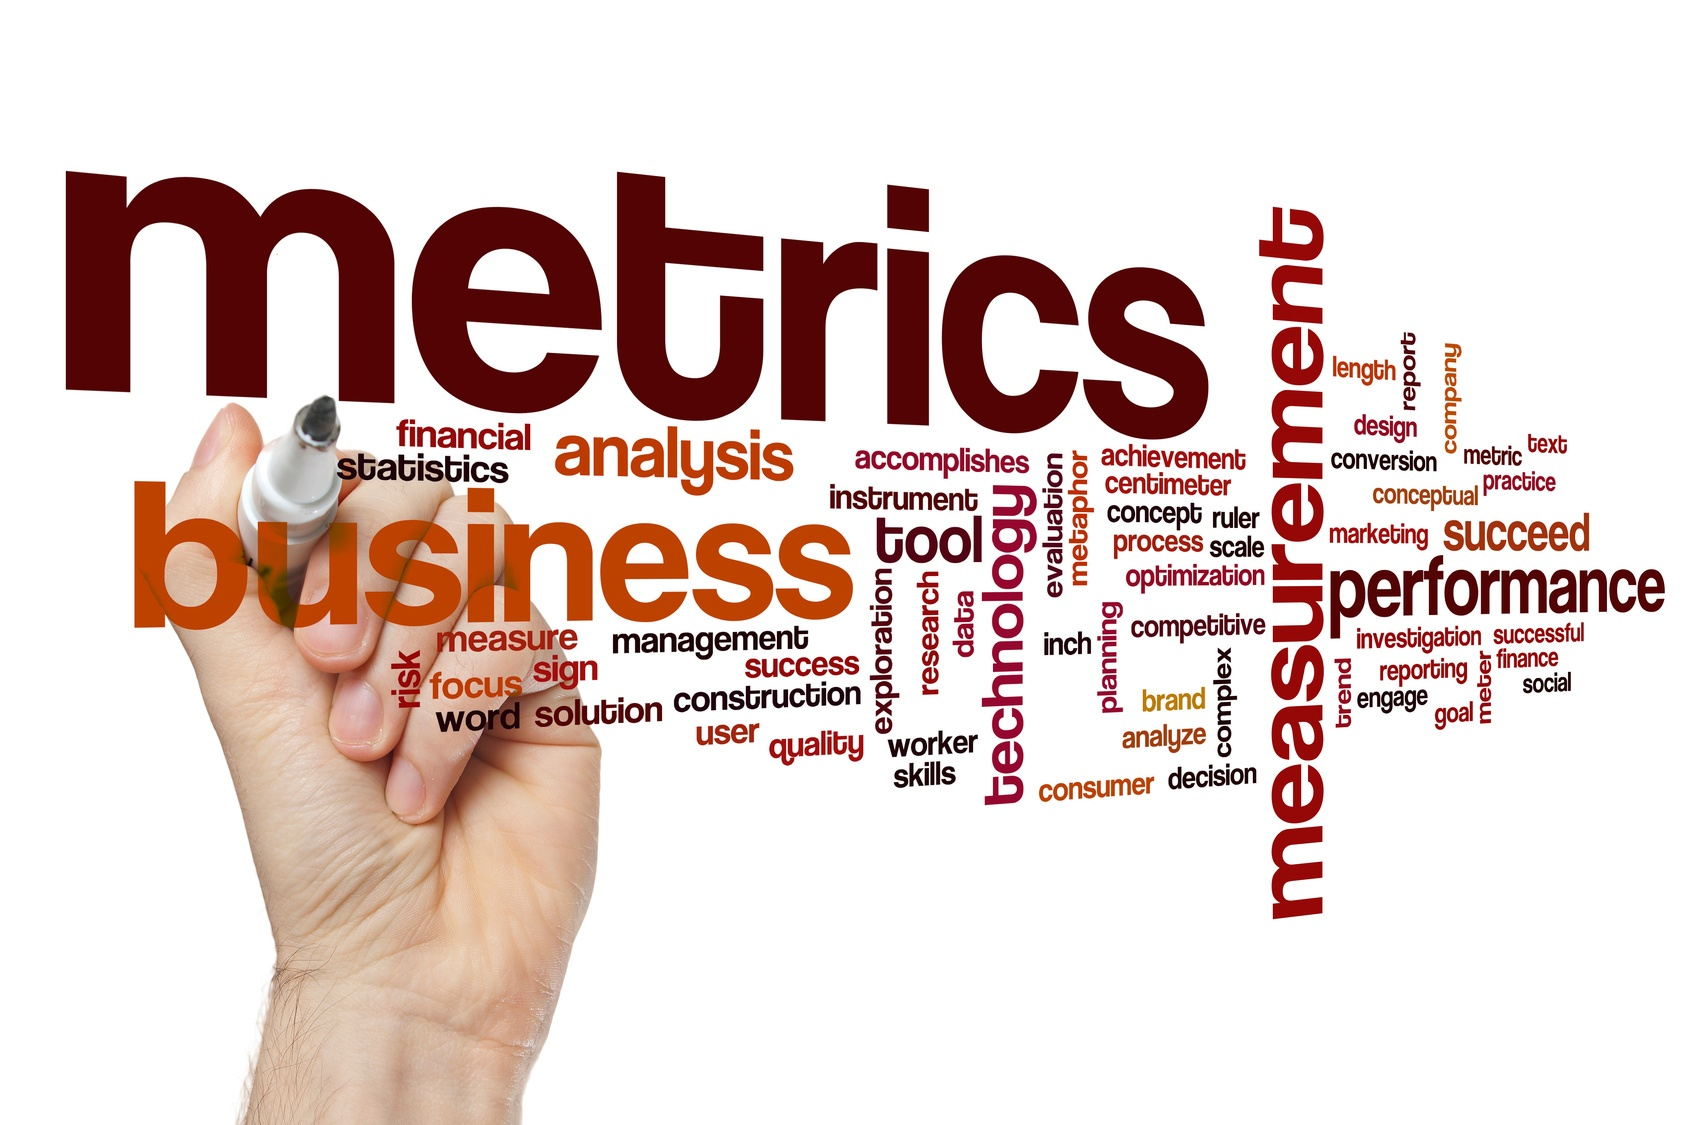 Quick Tip: Make These Marketing Metrics Part of Your Next Quarterly Report